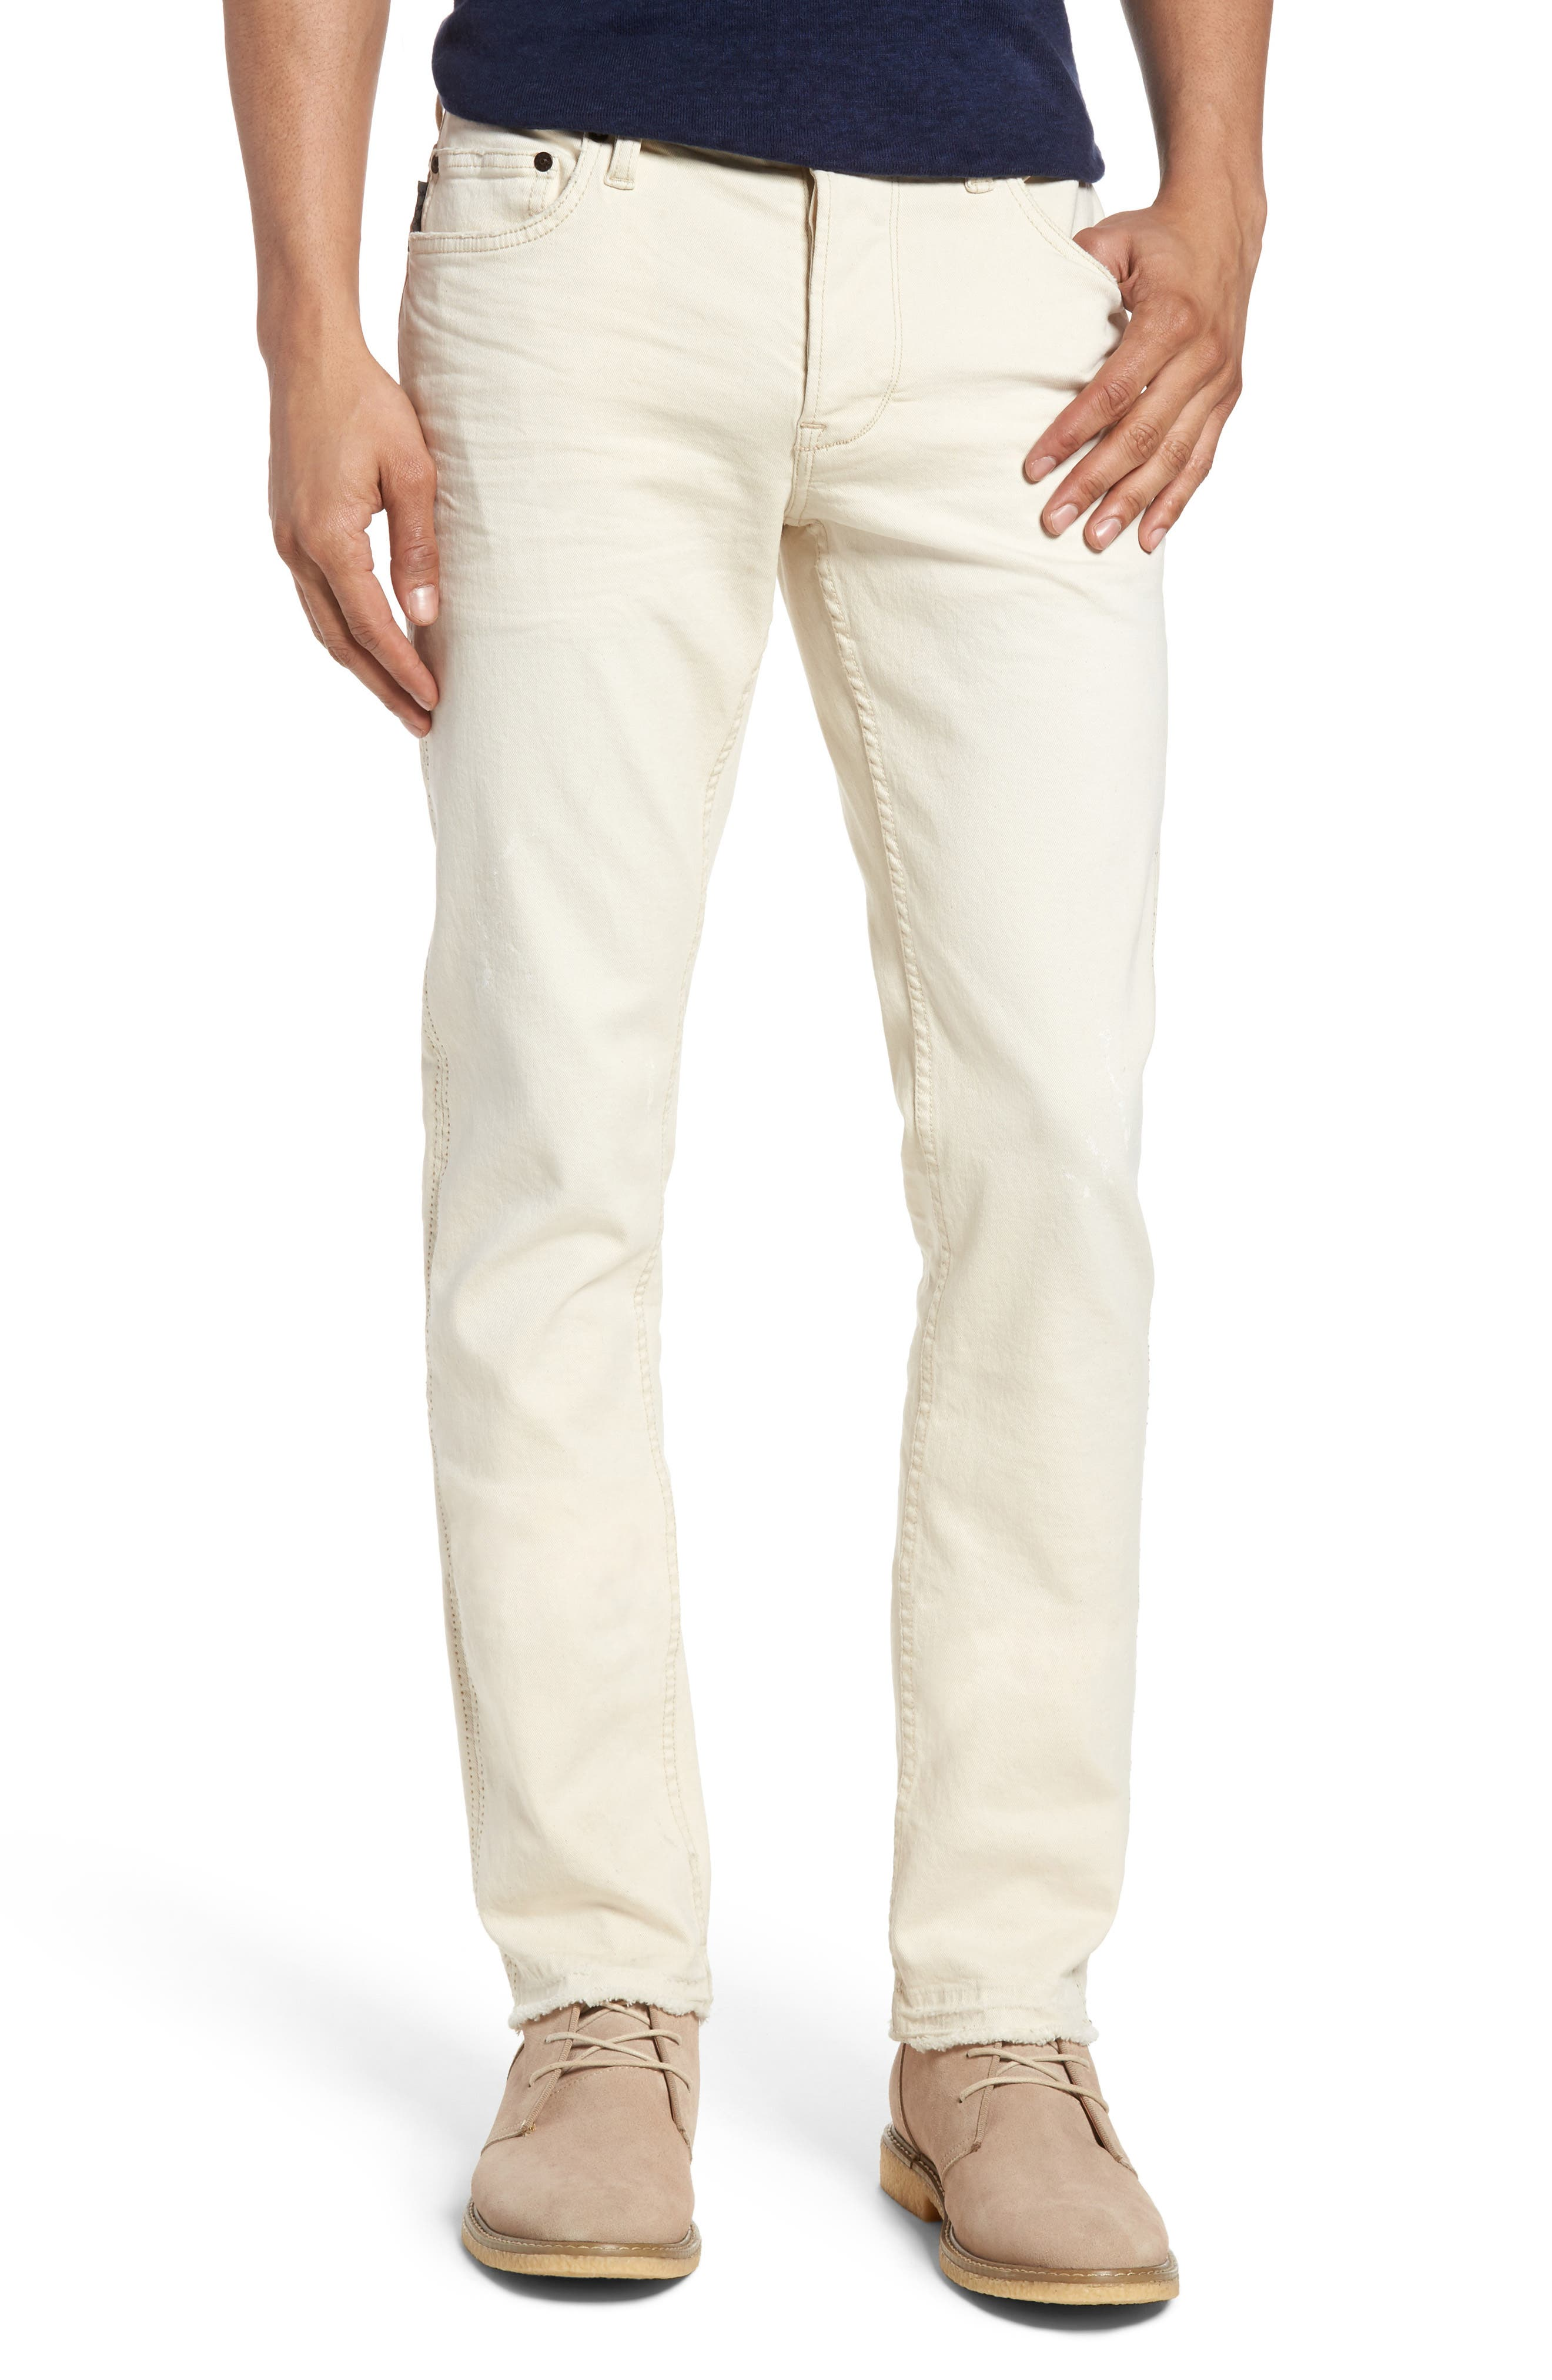 Wight Skinny Jeans,                             Main thumbnail 5, color,